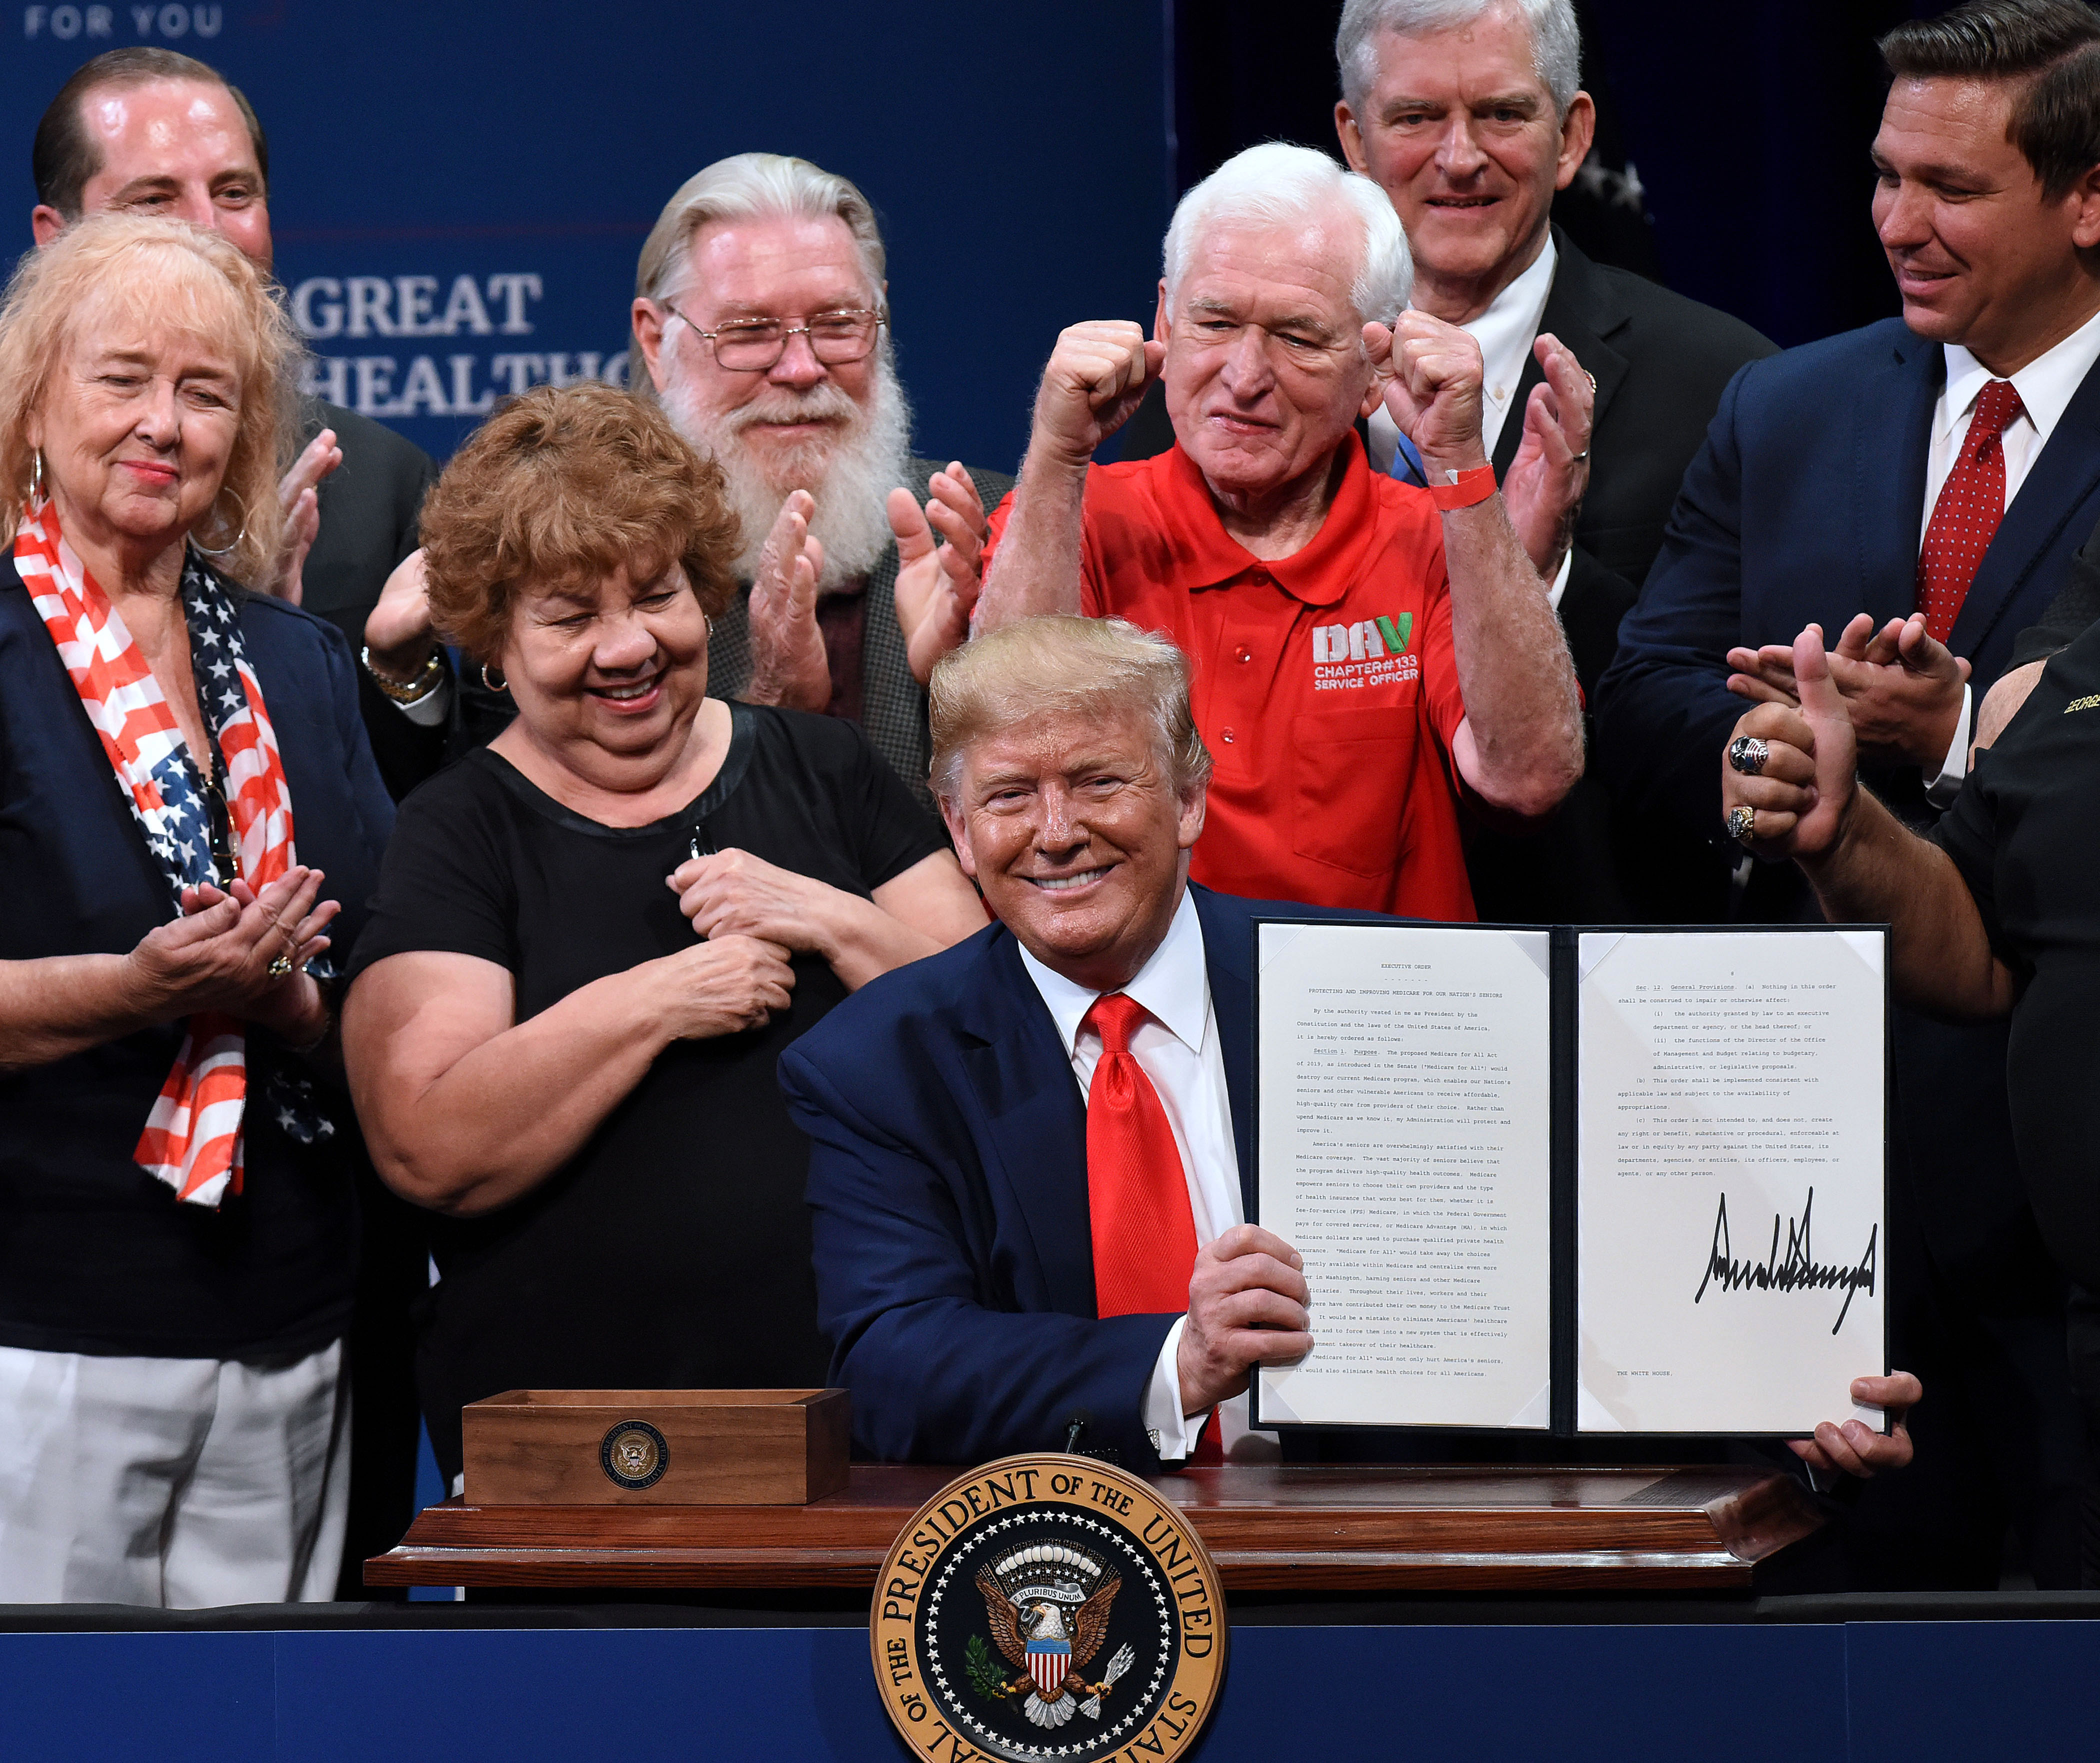 THE VILLAGES, FLORIDA, UNITED STATES - 2019/10/03: U.S. President Donald Trump signs an executive order to protect and improve Medicare at the Sharon L. Morse Performing Arts Center.